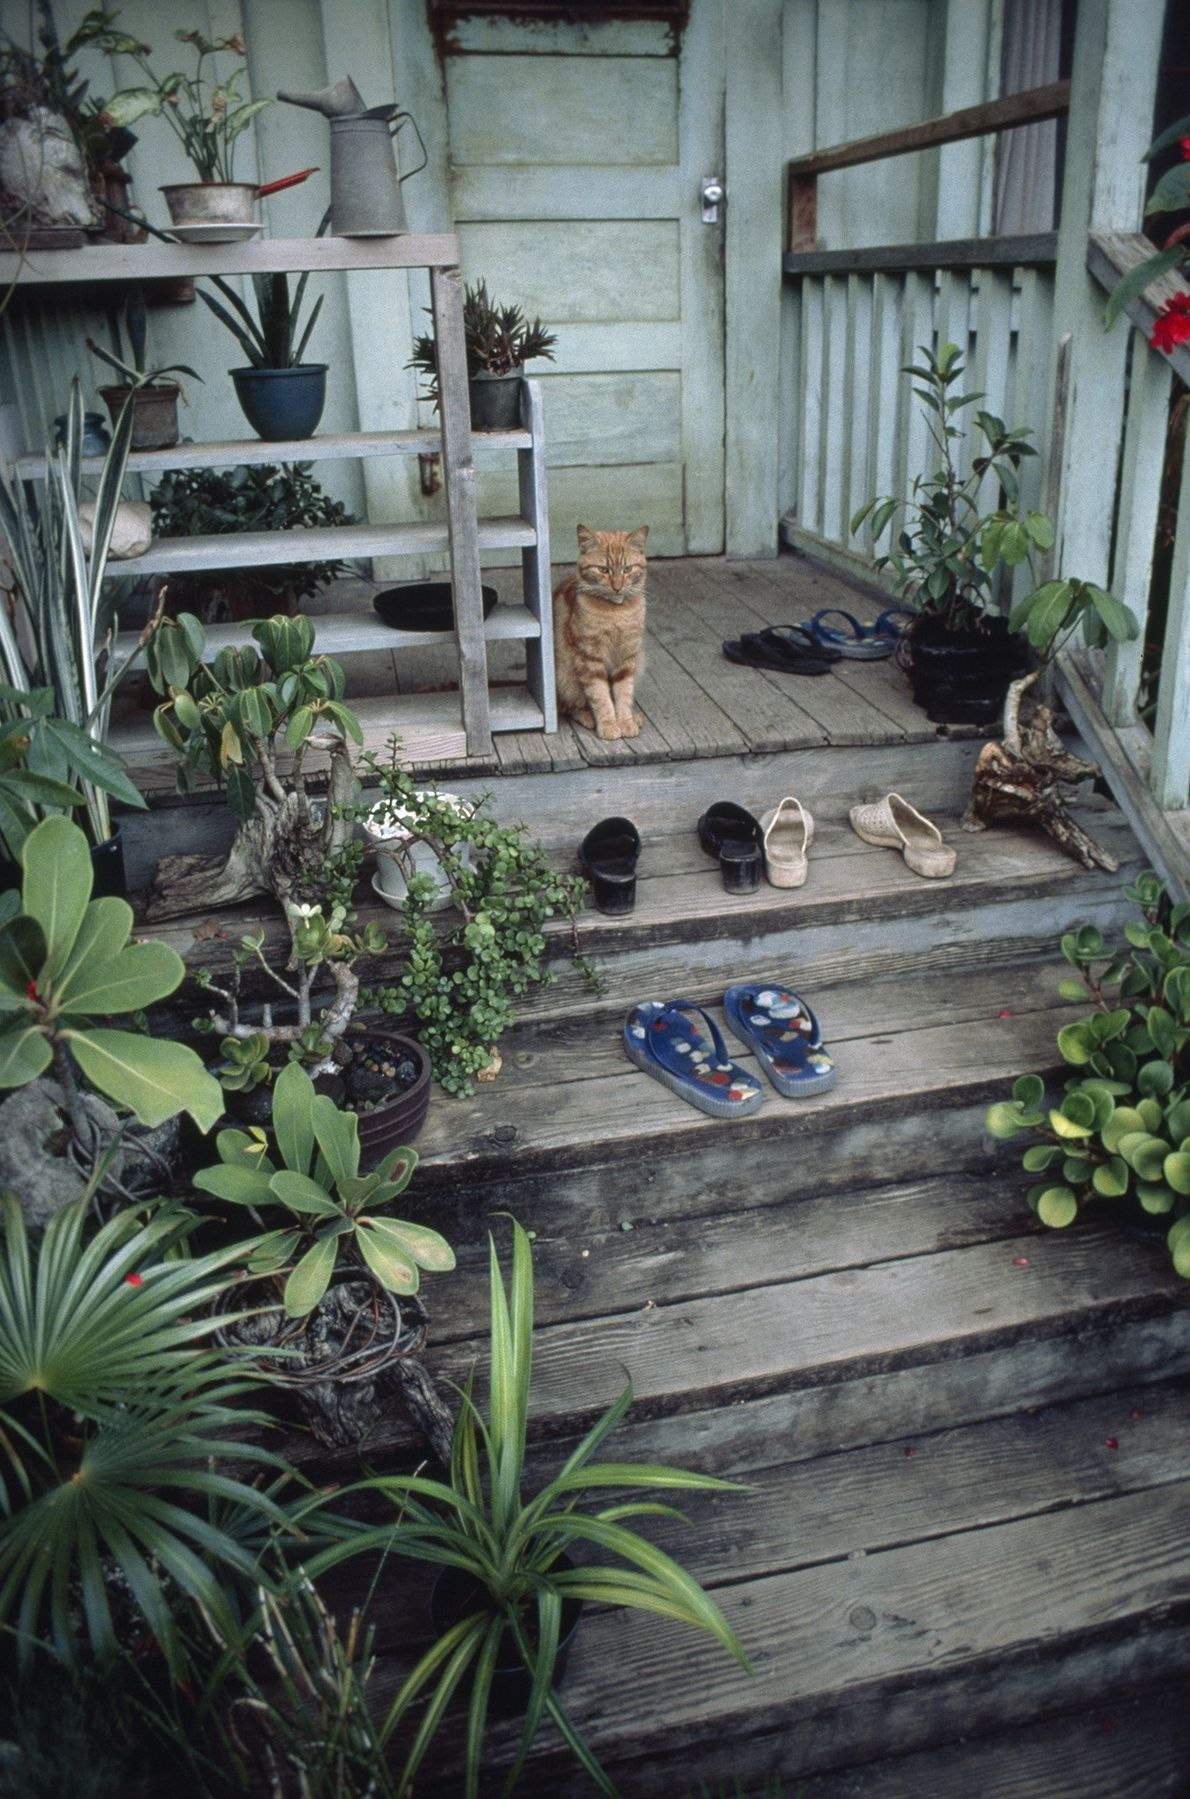 In this photo from a 1979 National Geographic, a cat contemplates paradise, or perhaps shoewear, from ...